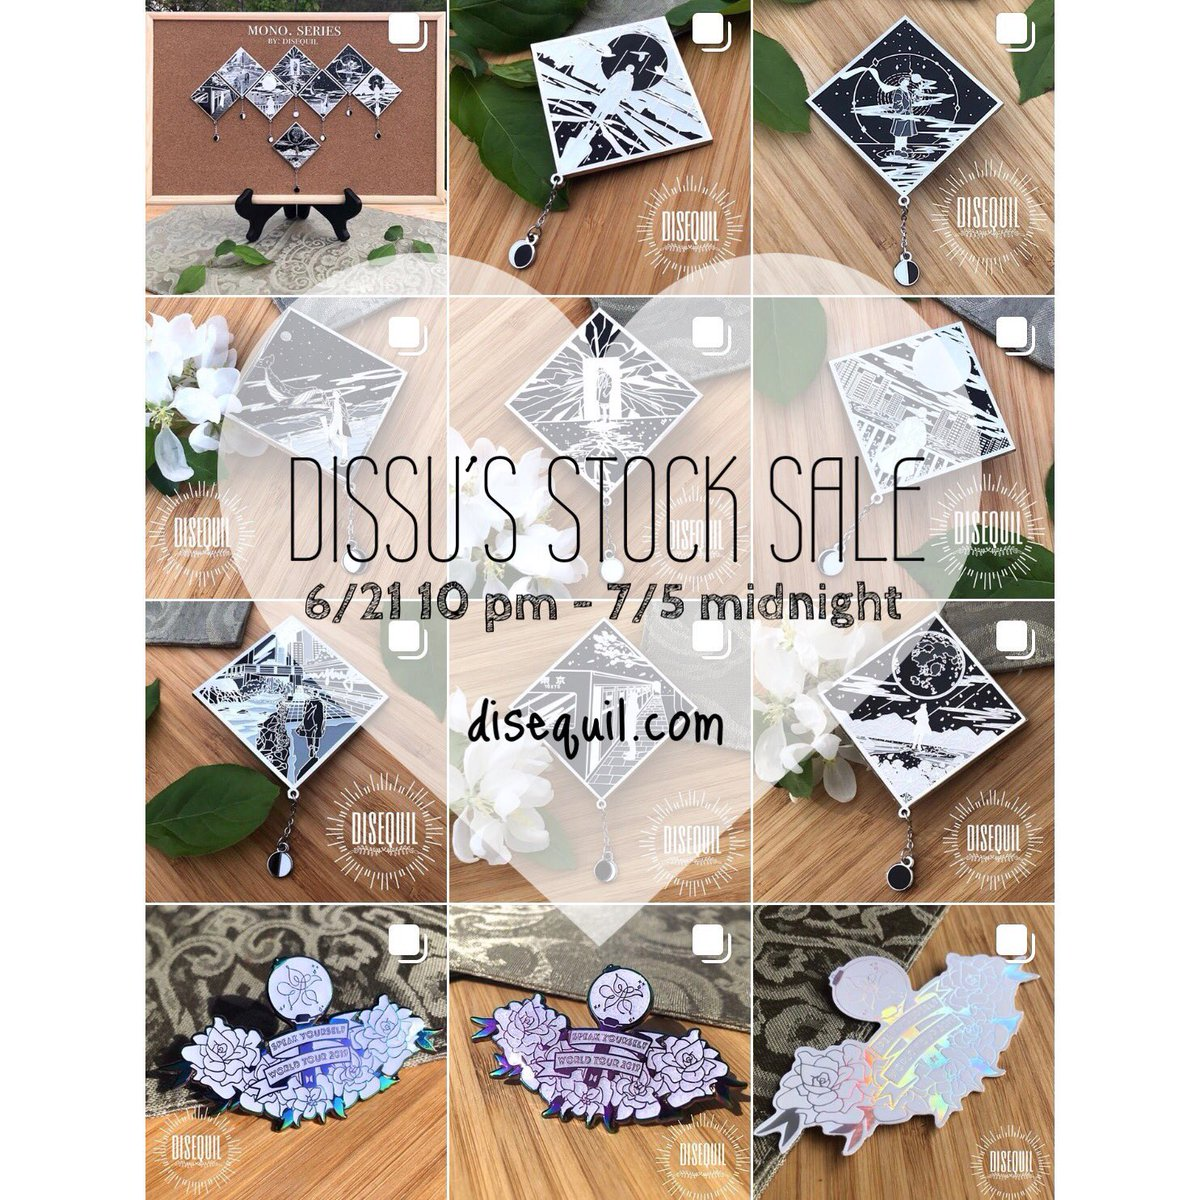 [ 🌱 RT🙏: DISSU'S STOCK SALE & GA ] 💫 shop opens : 6/21 (10 pm EST) - 7/5 (midnight) Doing a stock sale including all of my pins, charms & prints! 🥰❤️ Please see the last pic for GA details! 🛒 disequil.com